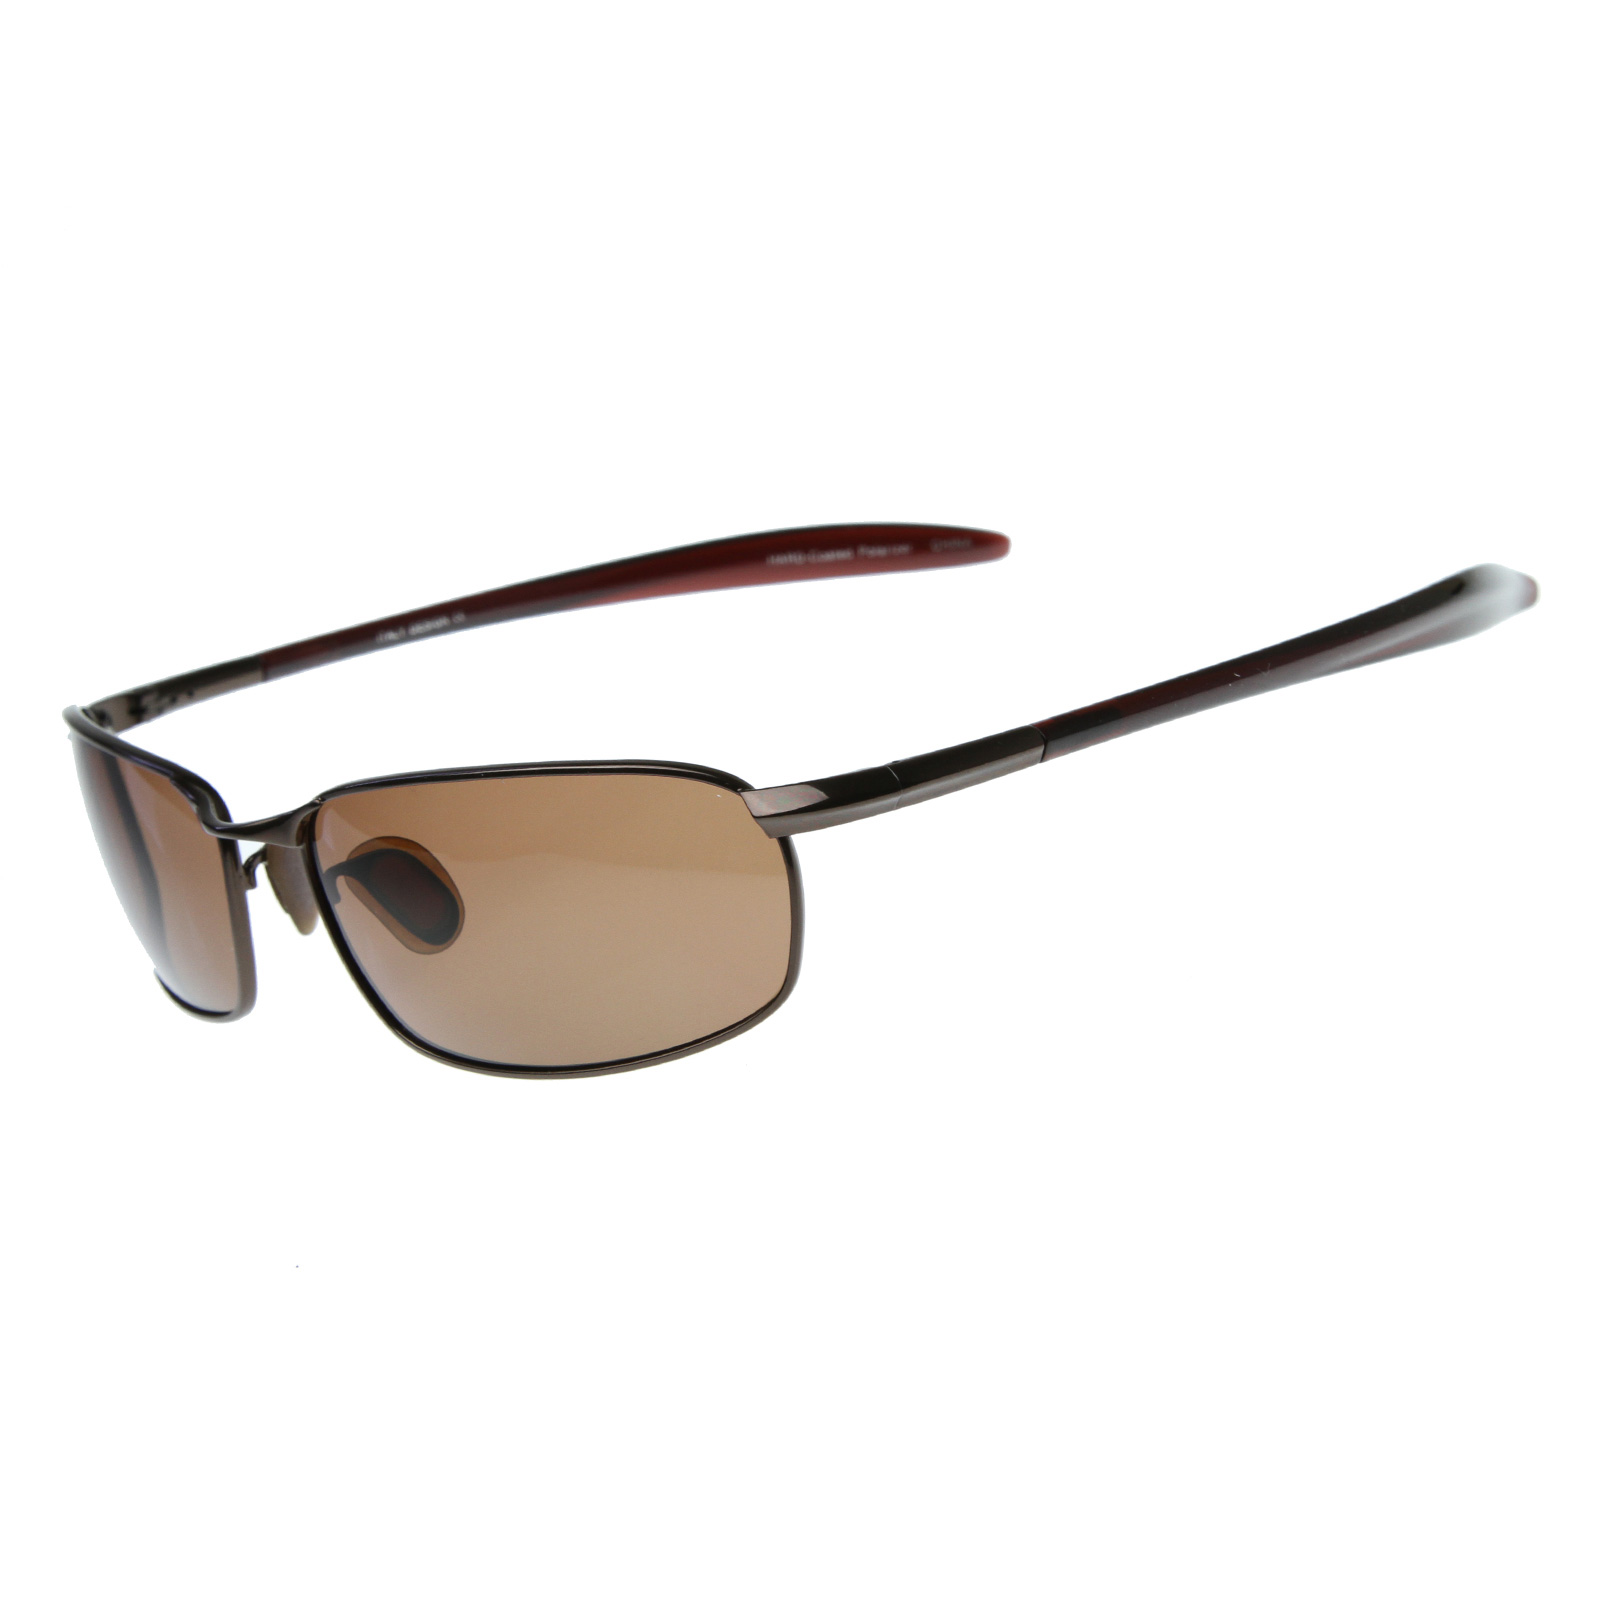 Polarized sunglasses for men fishing for Mens fishing sunglasses